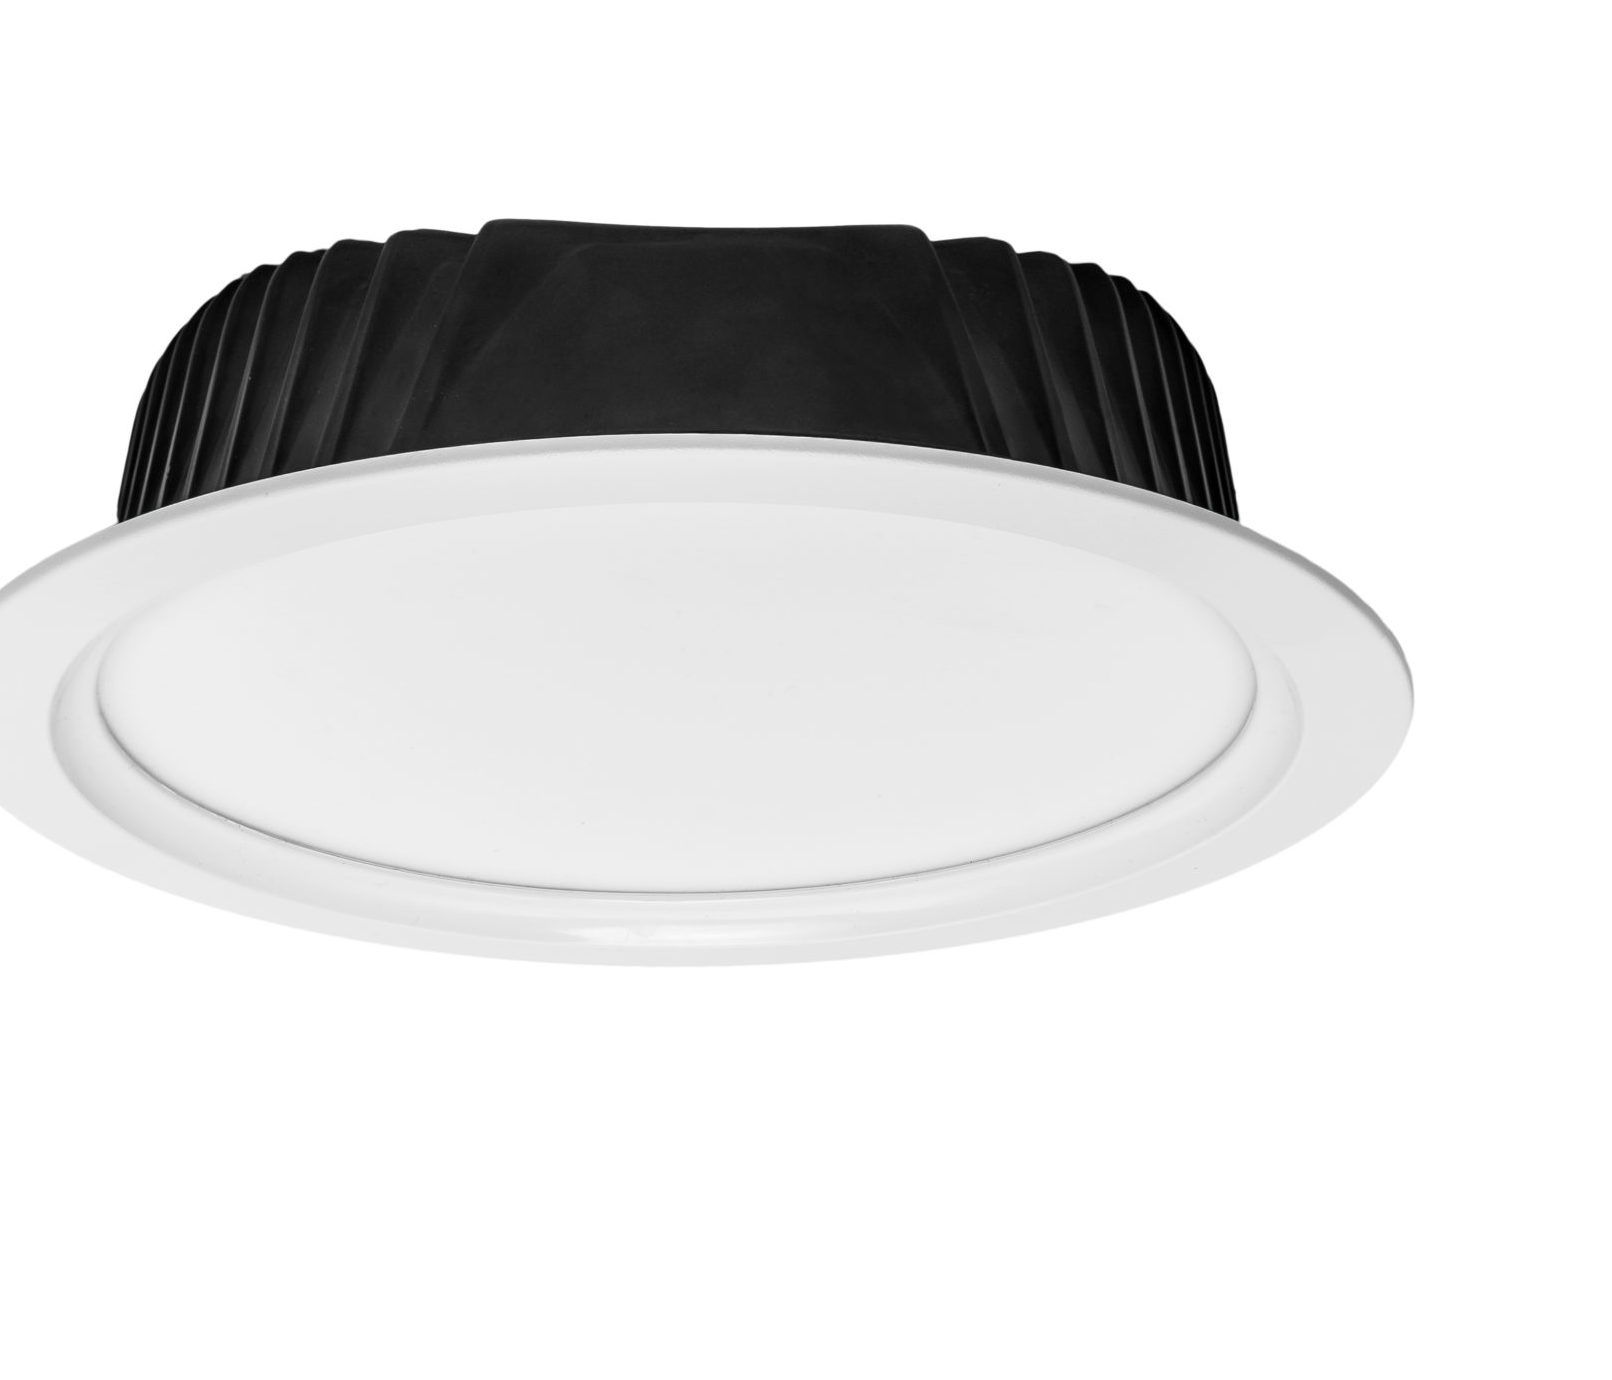 Downlight with milk diffuser